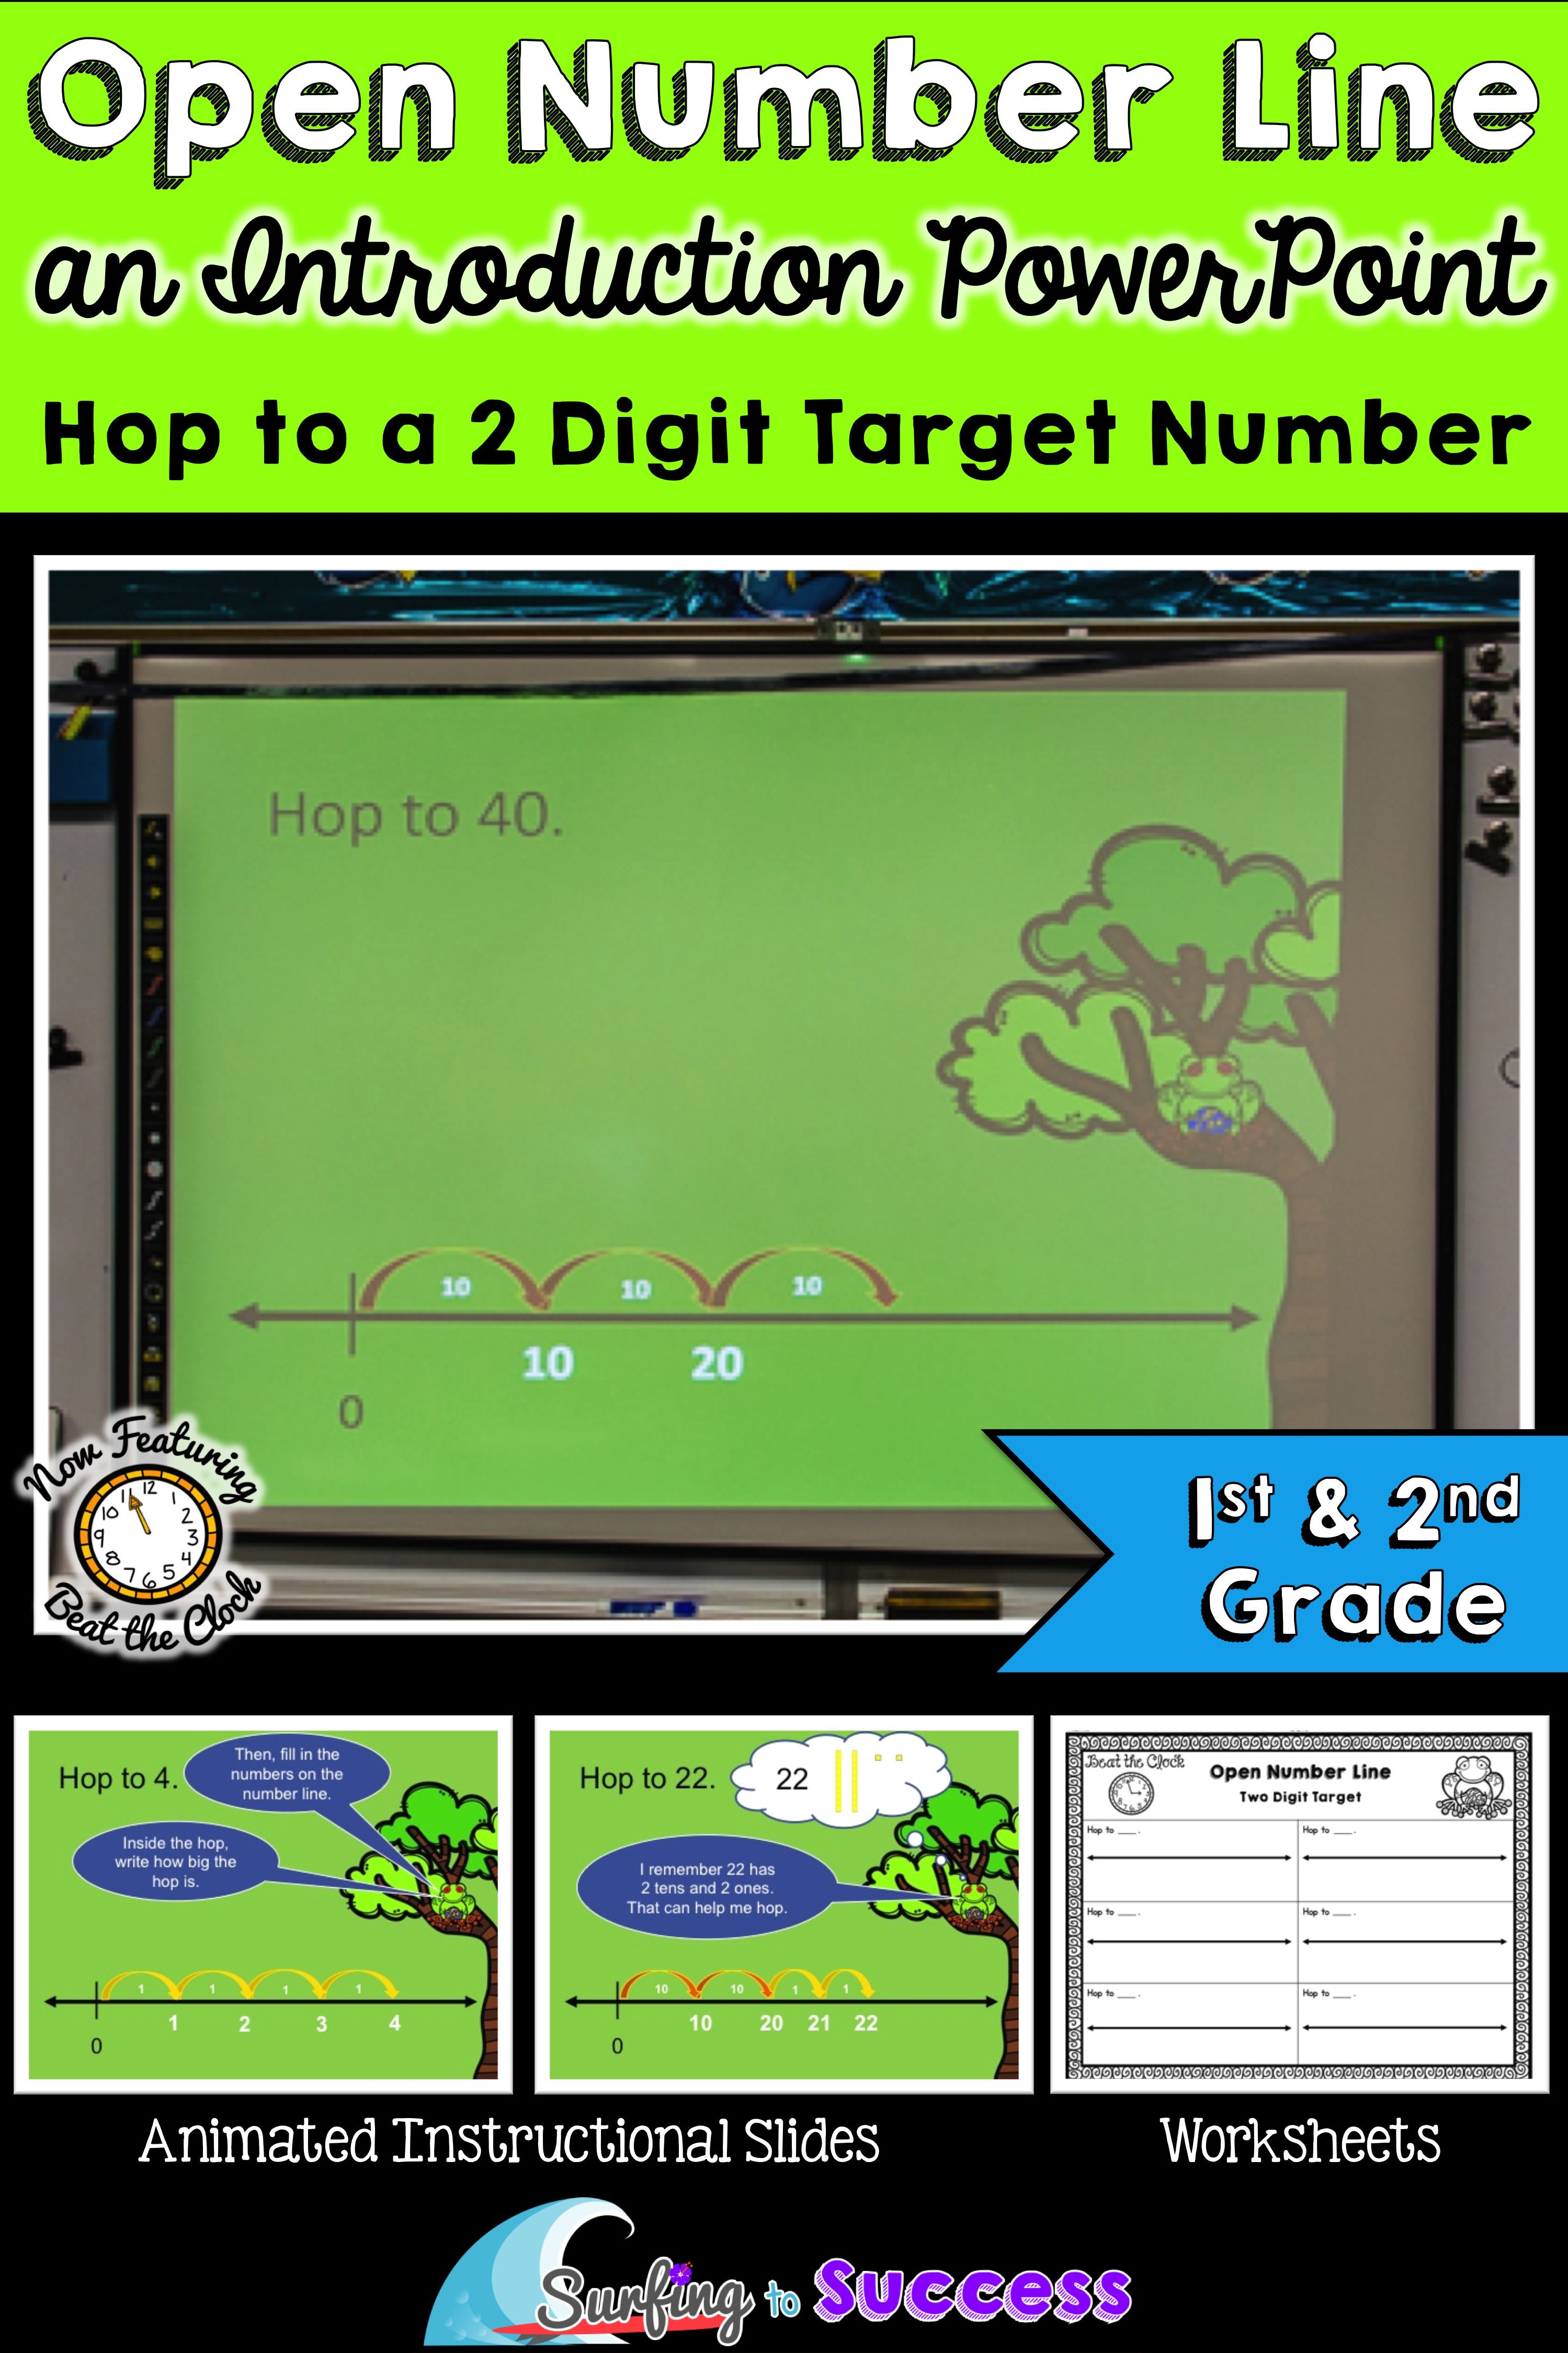 Introduction To Open Number Line Hop To A Target Number